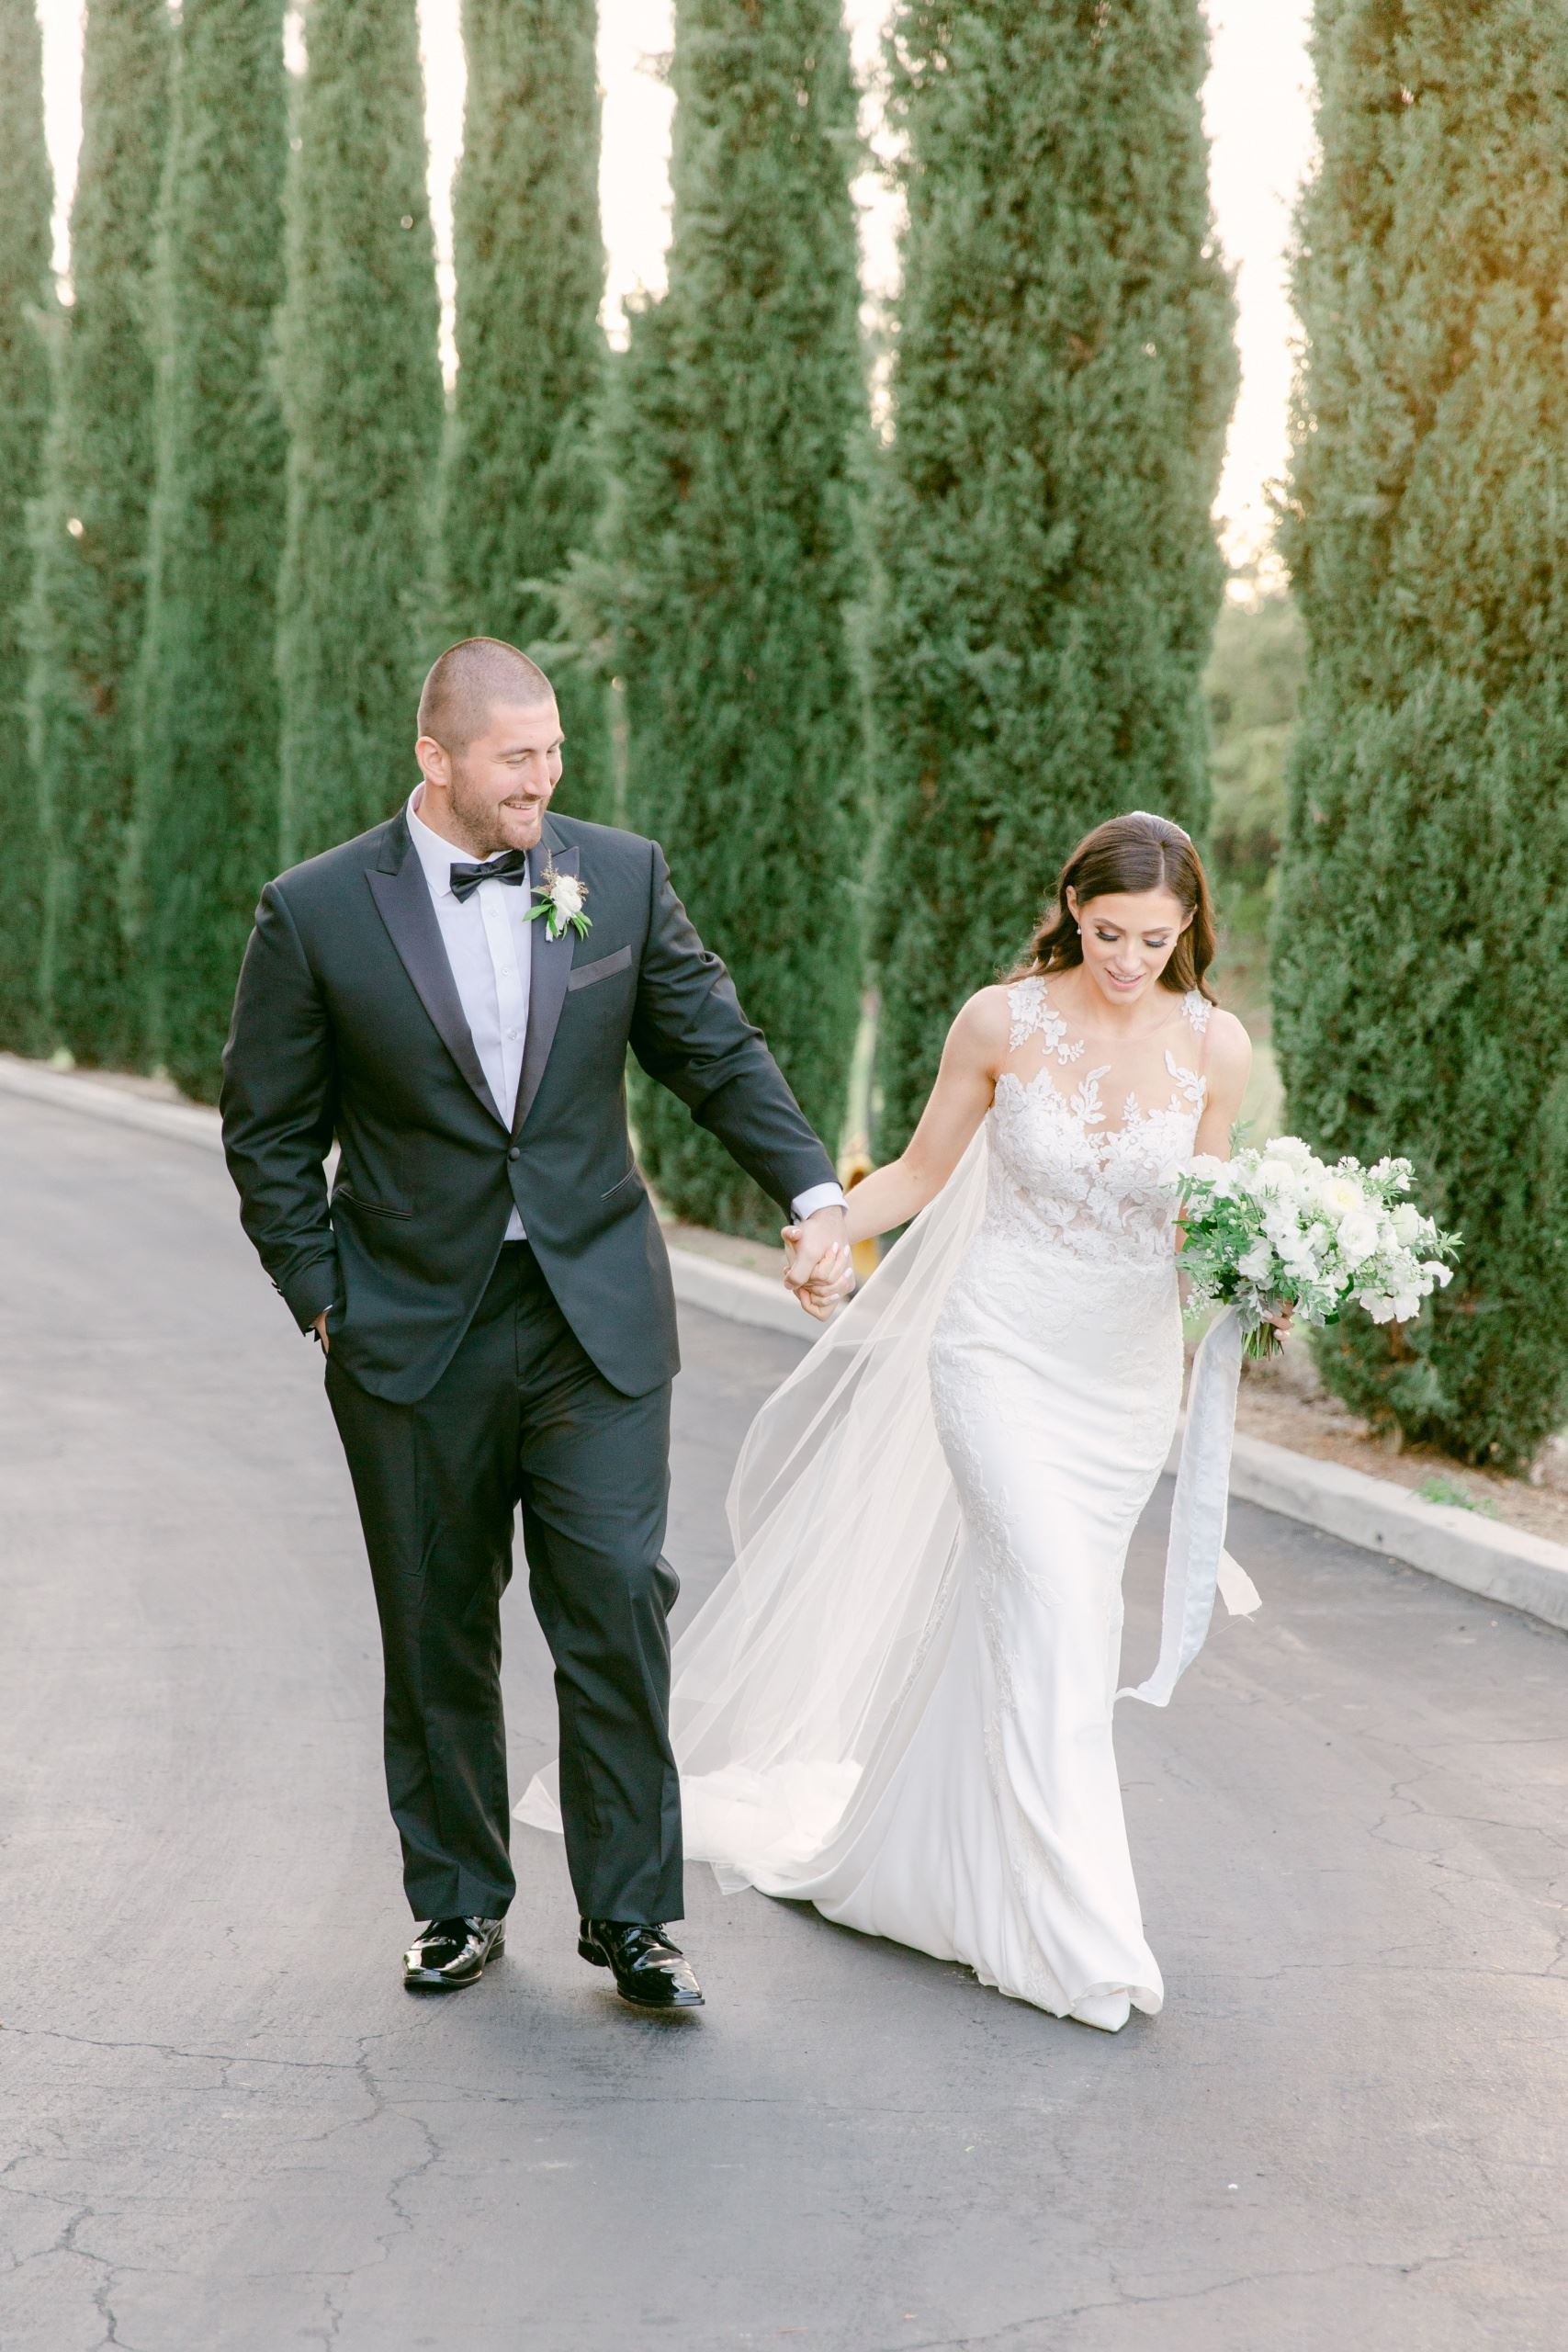 J.C. and Anna Tretter's San Diego Winter Wedding Image